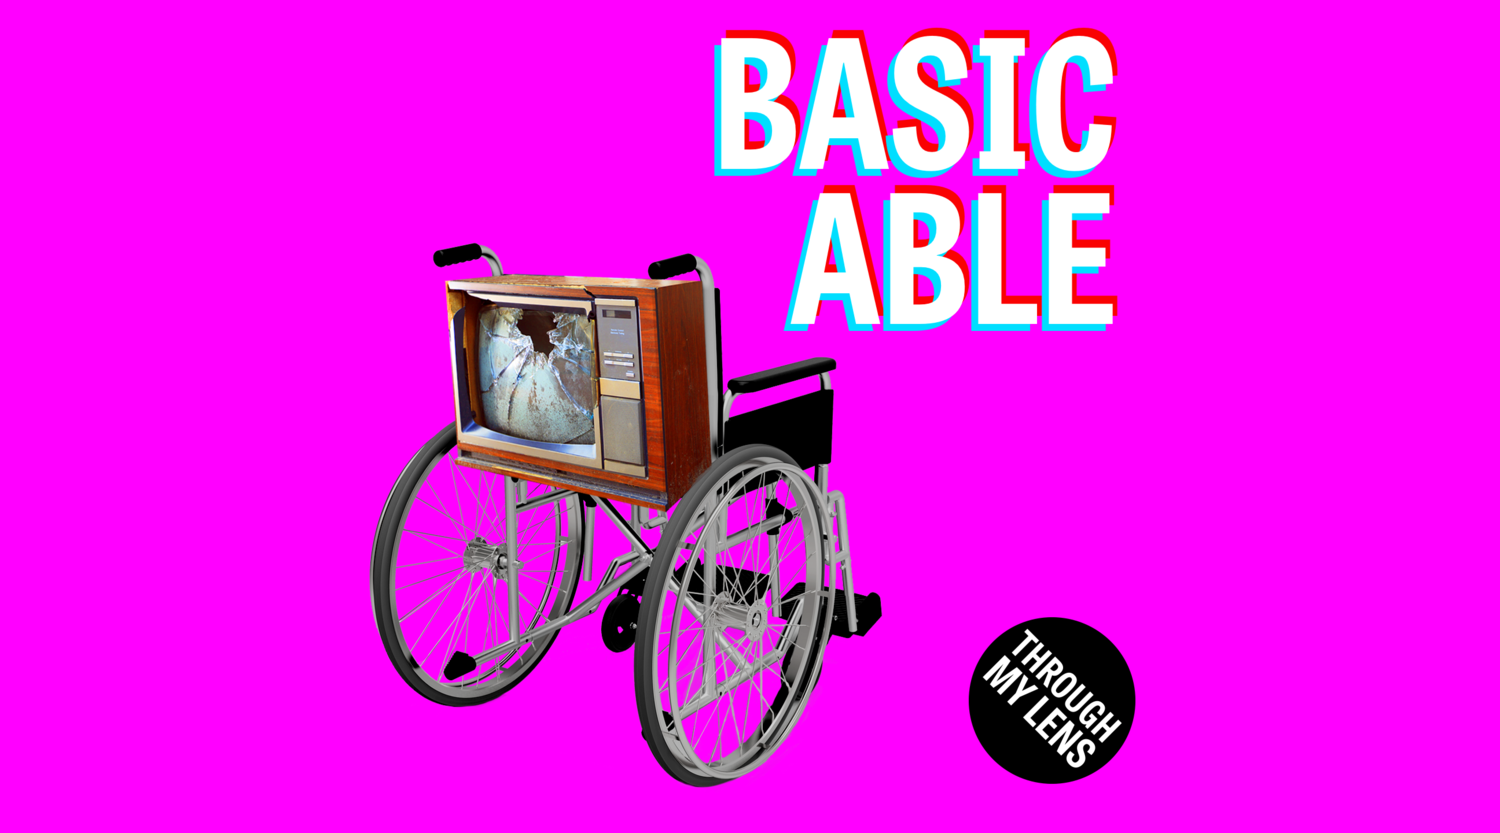 basic_able_1.png